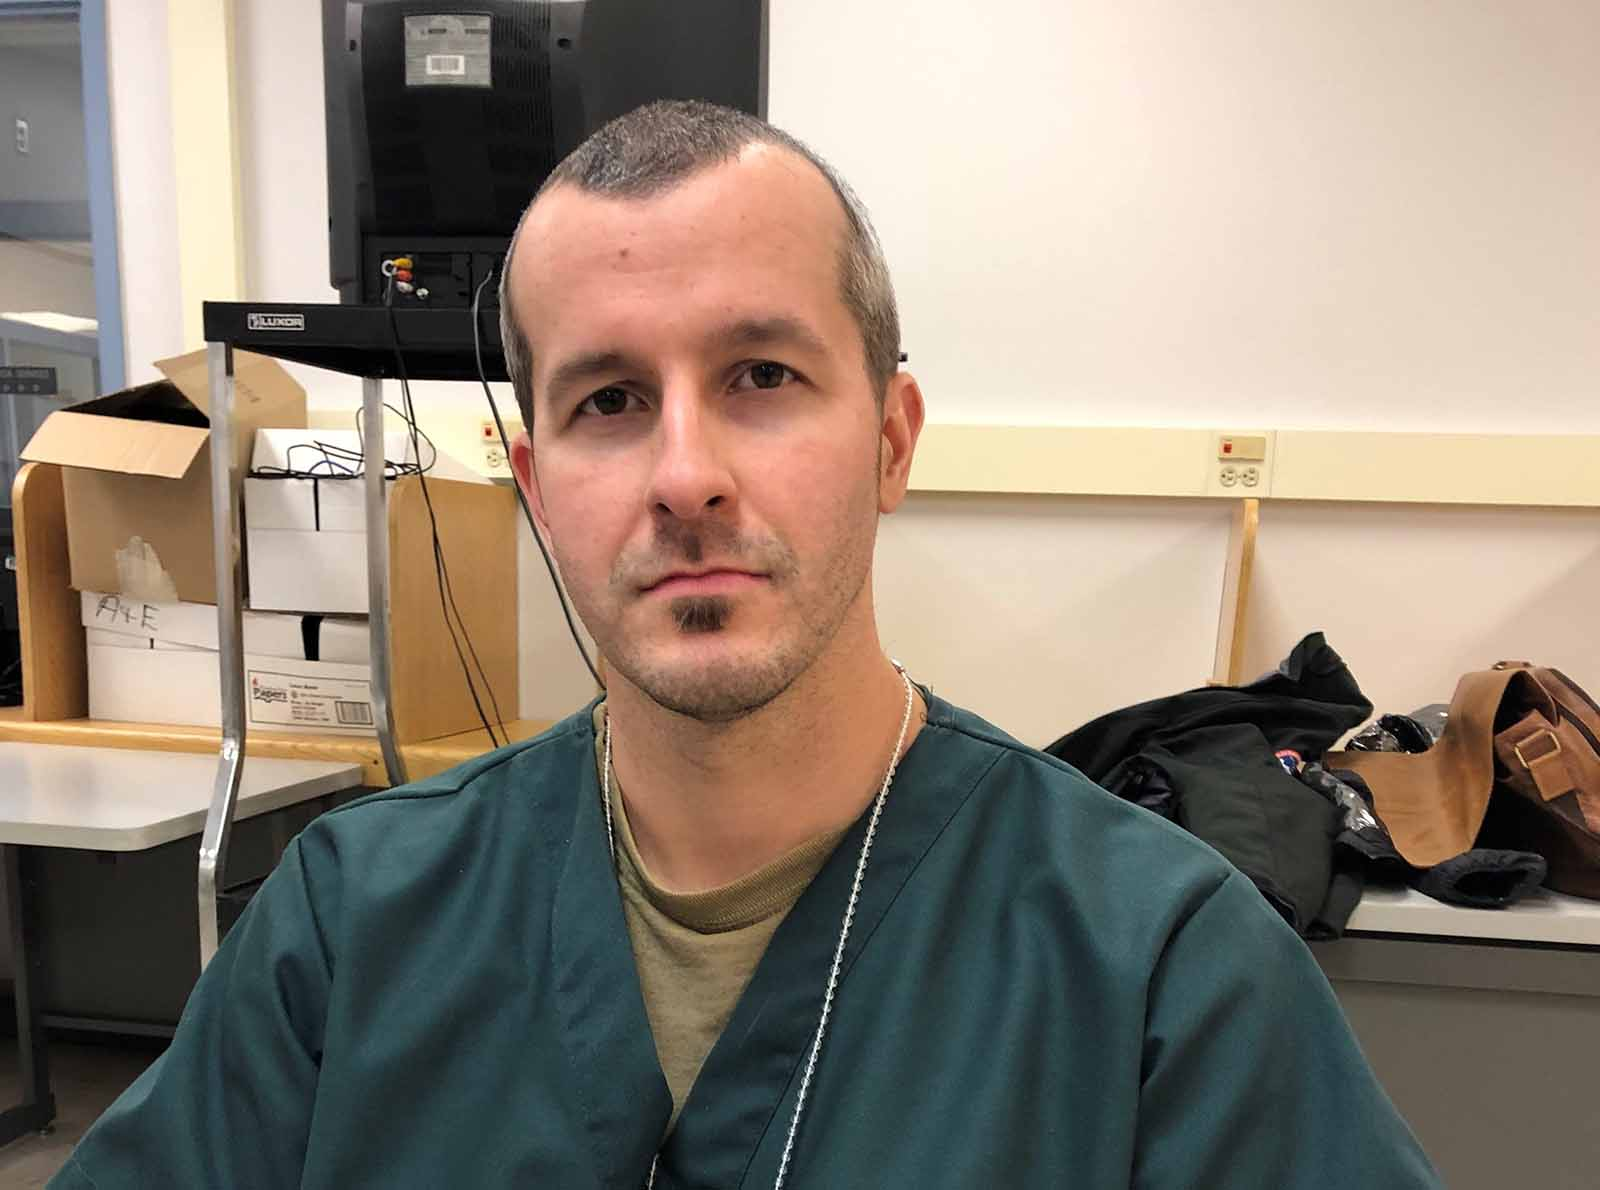 A key turning point in the Watts Family murders was Chris Watts's polygraph test. Find out how the test caused Watts to finally give a confession.